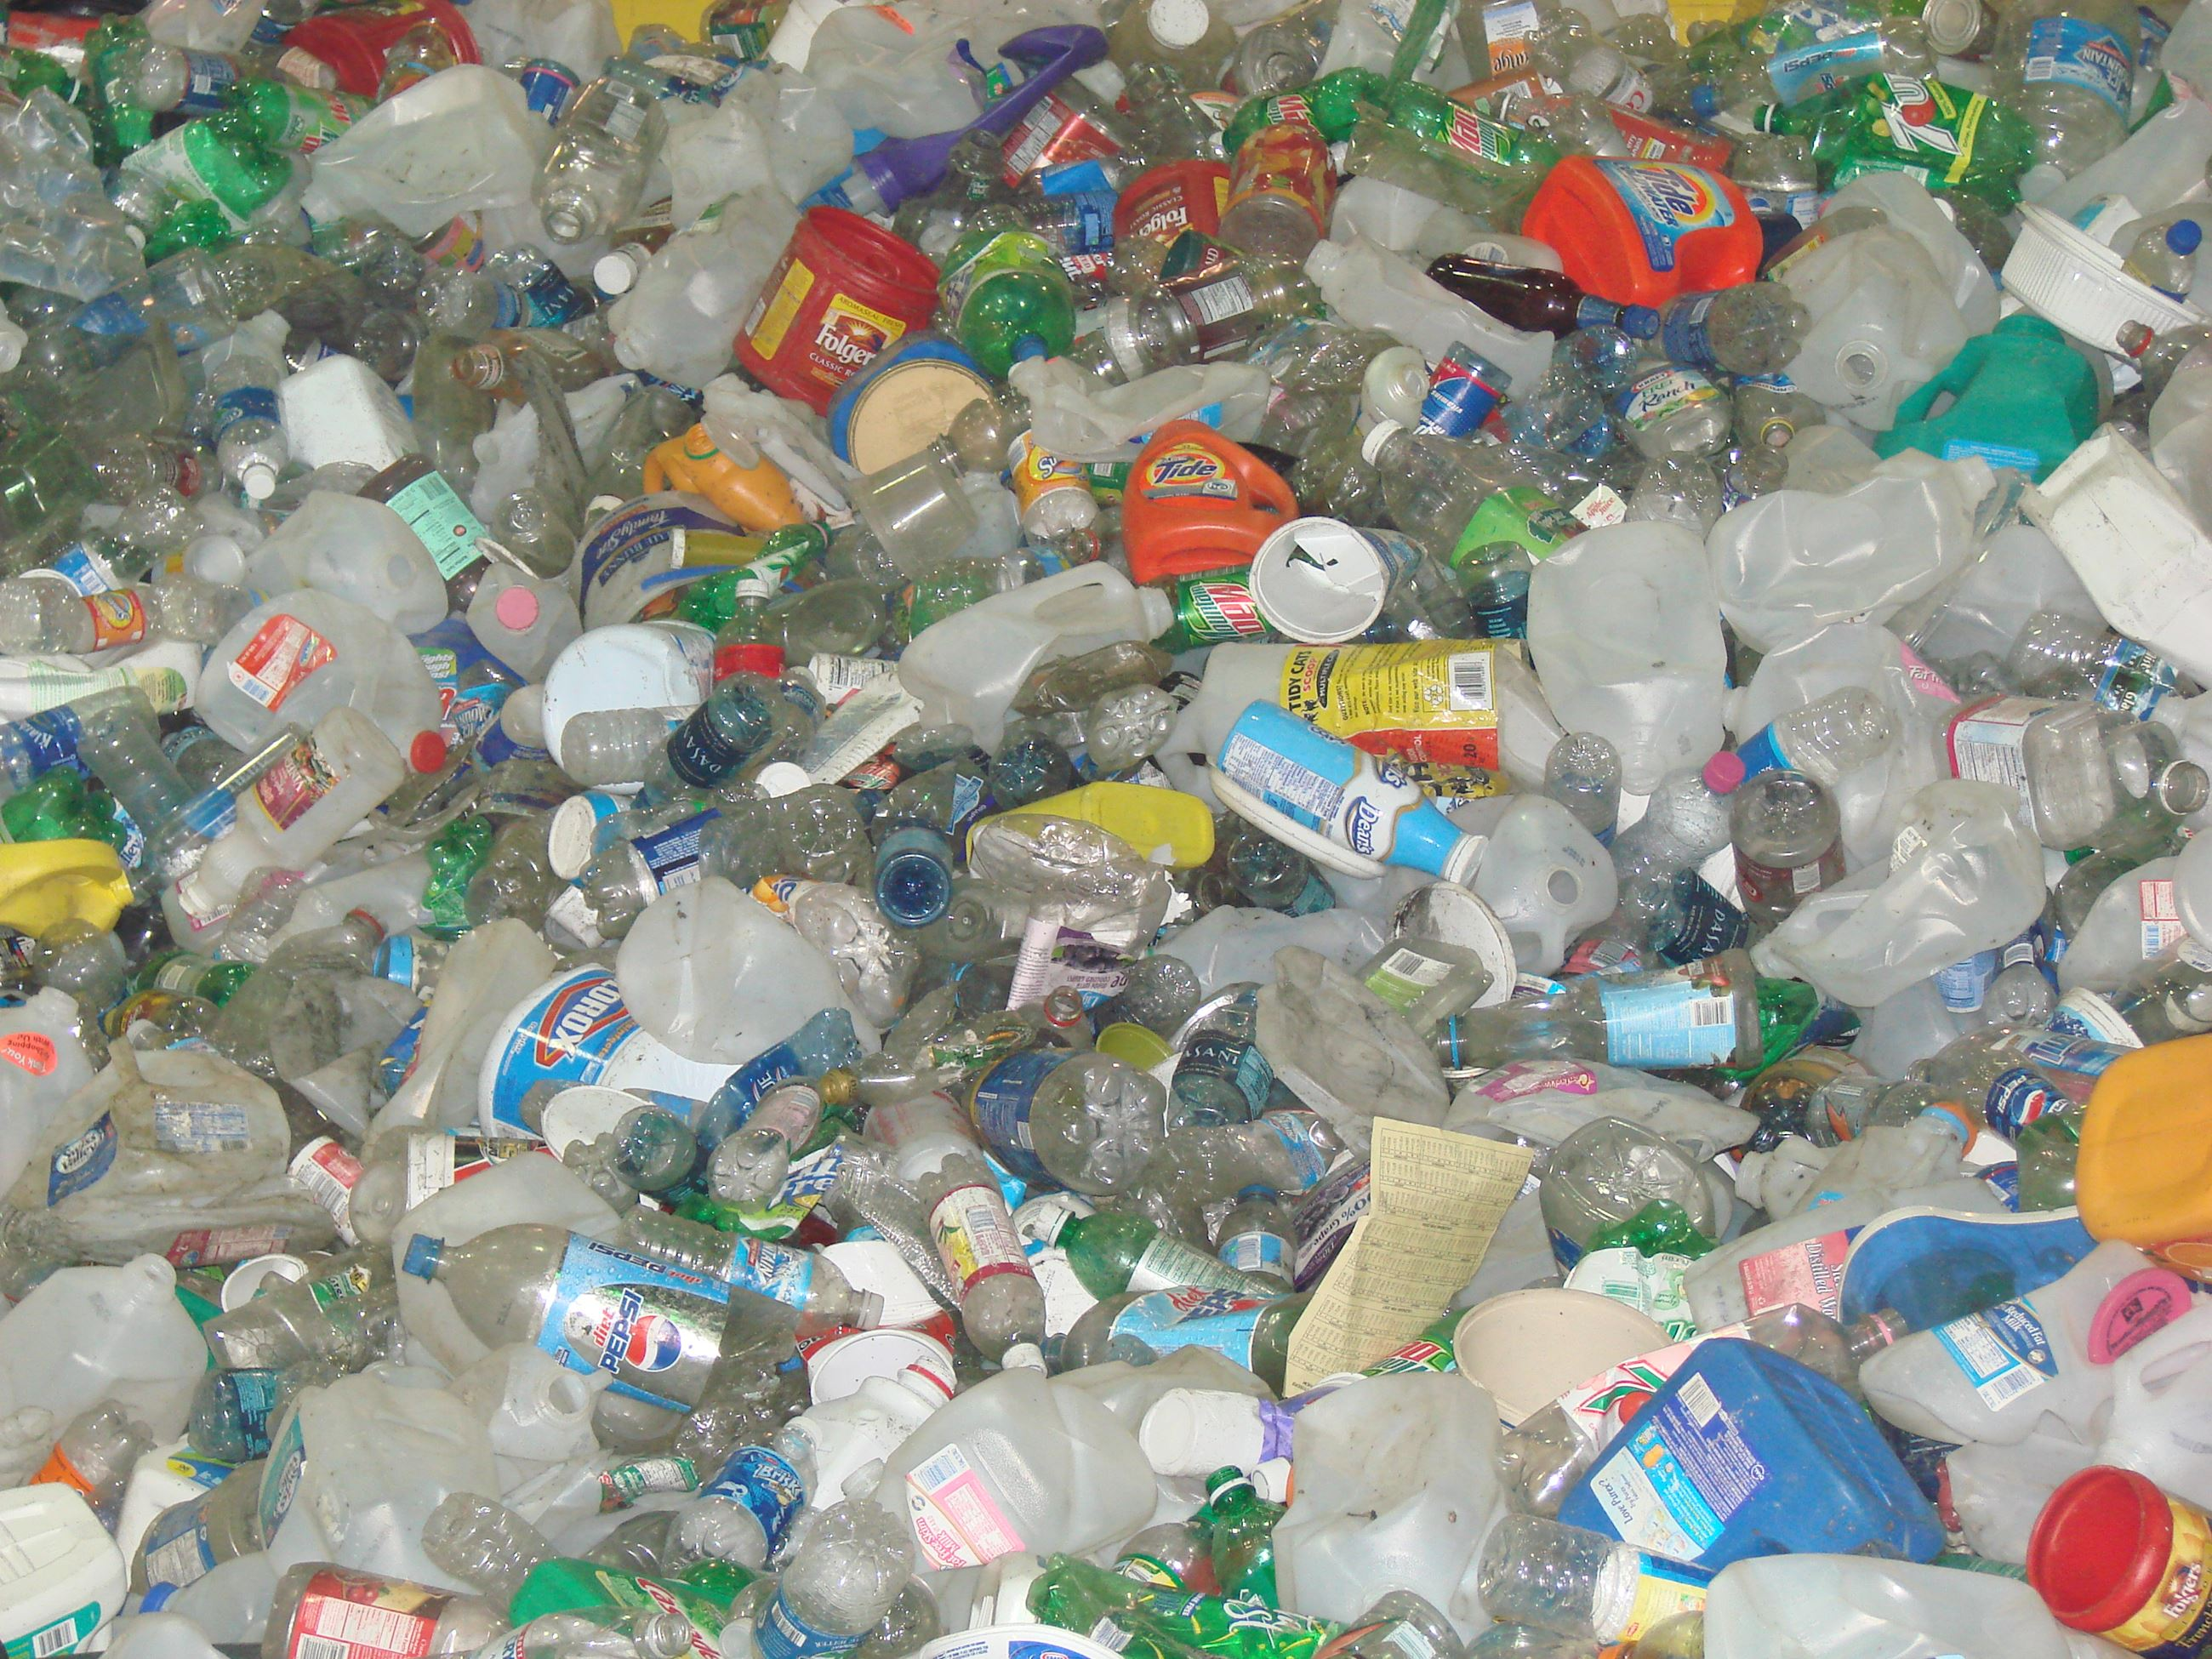 Plastic recyclables